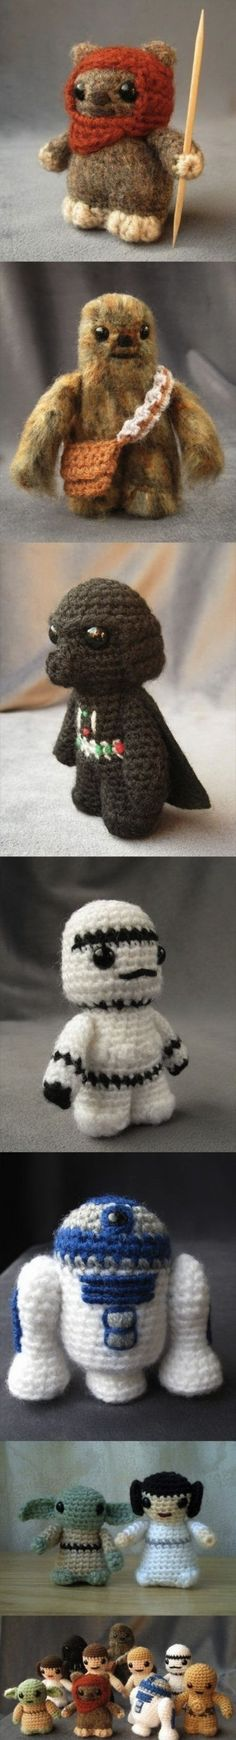 Knitted Star Wars!